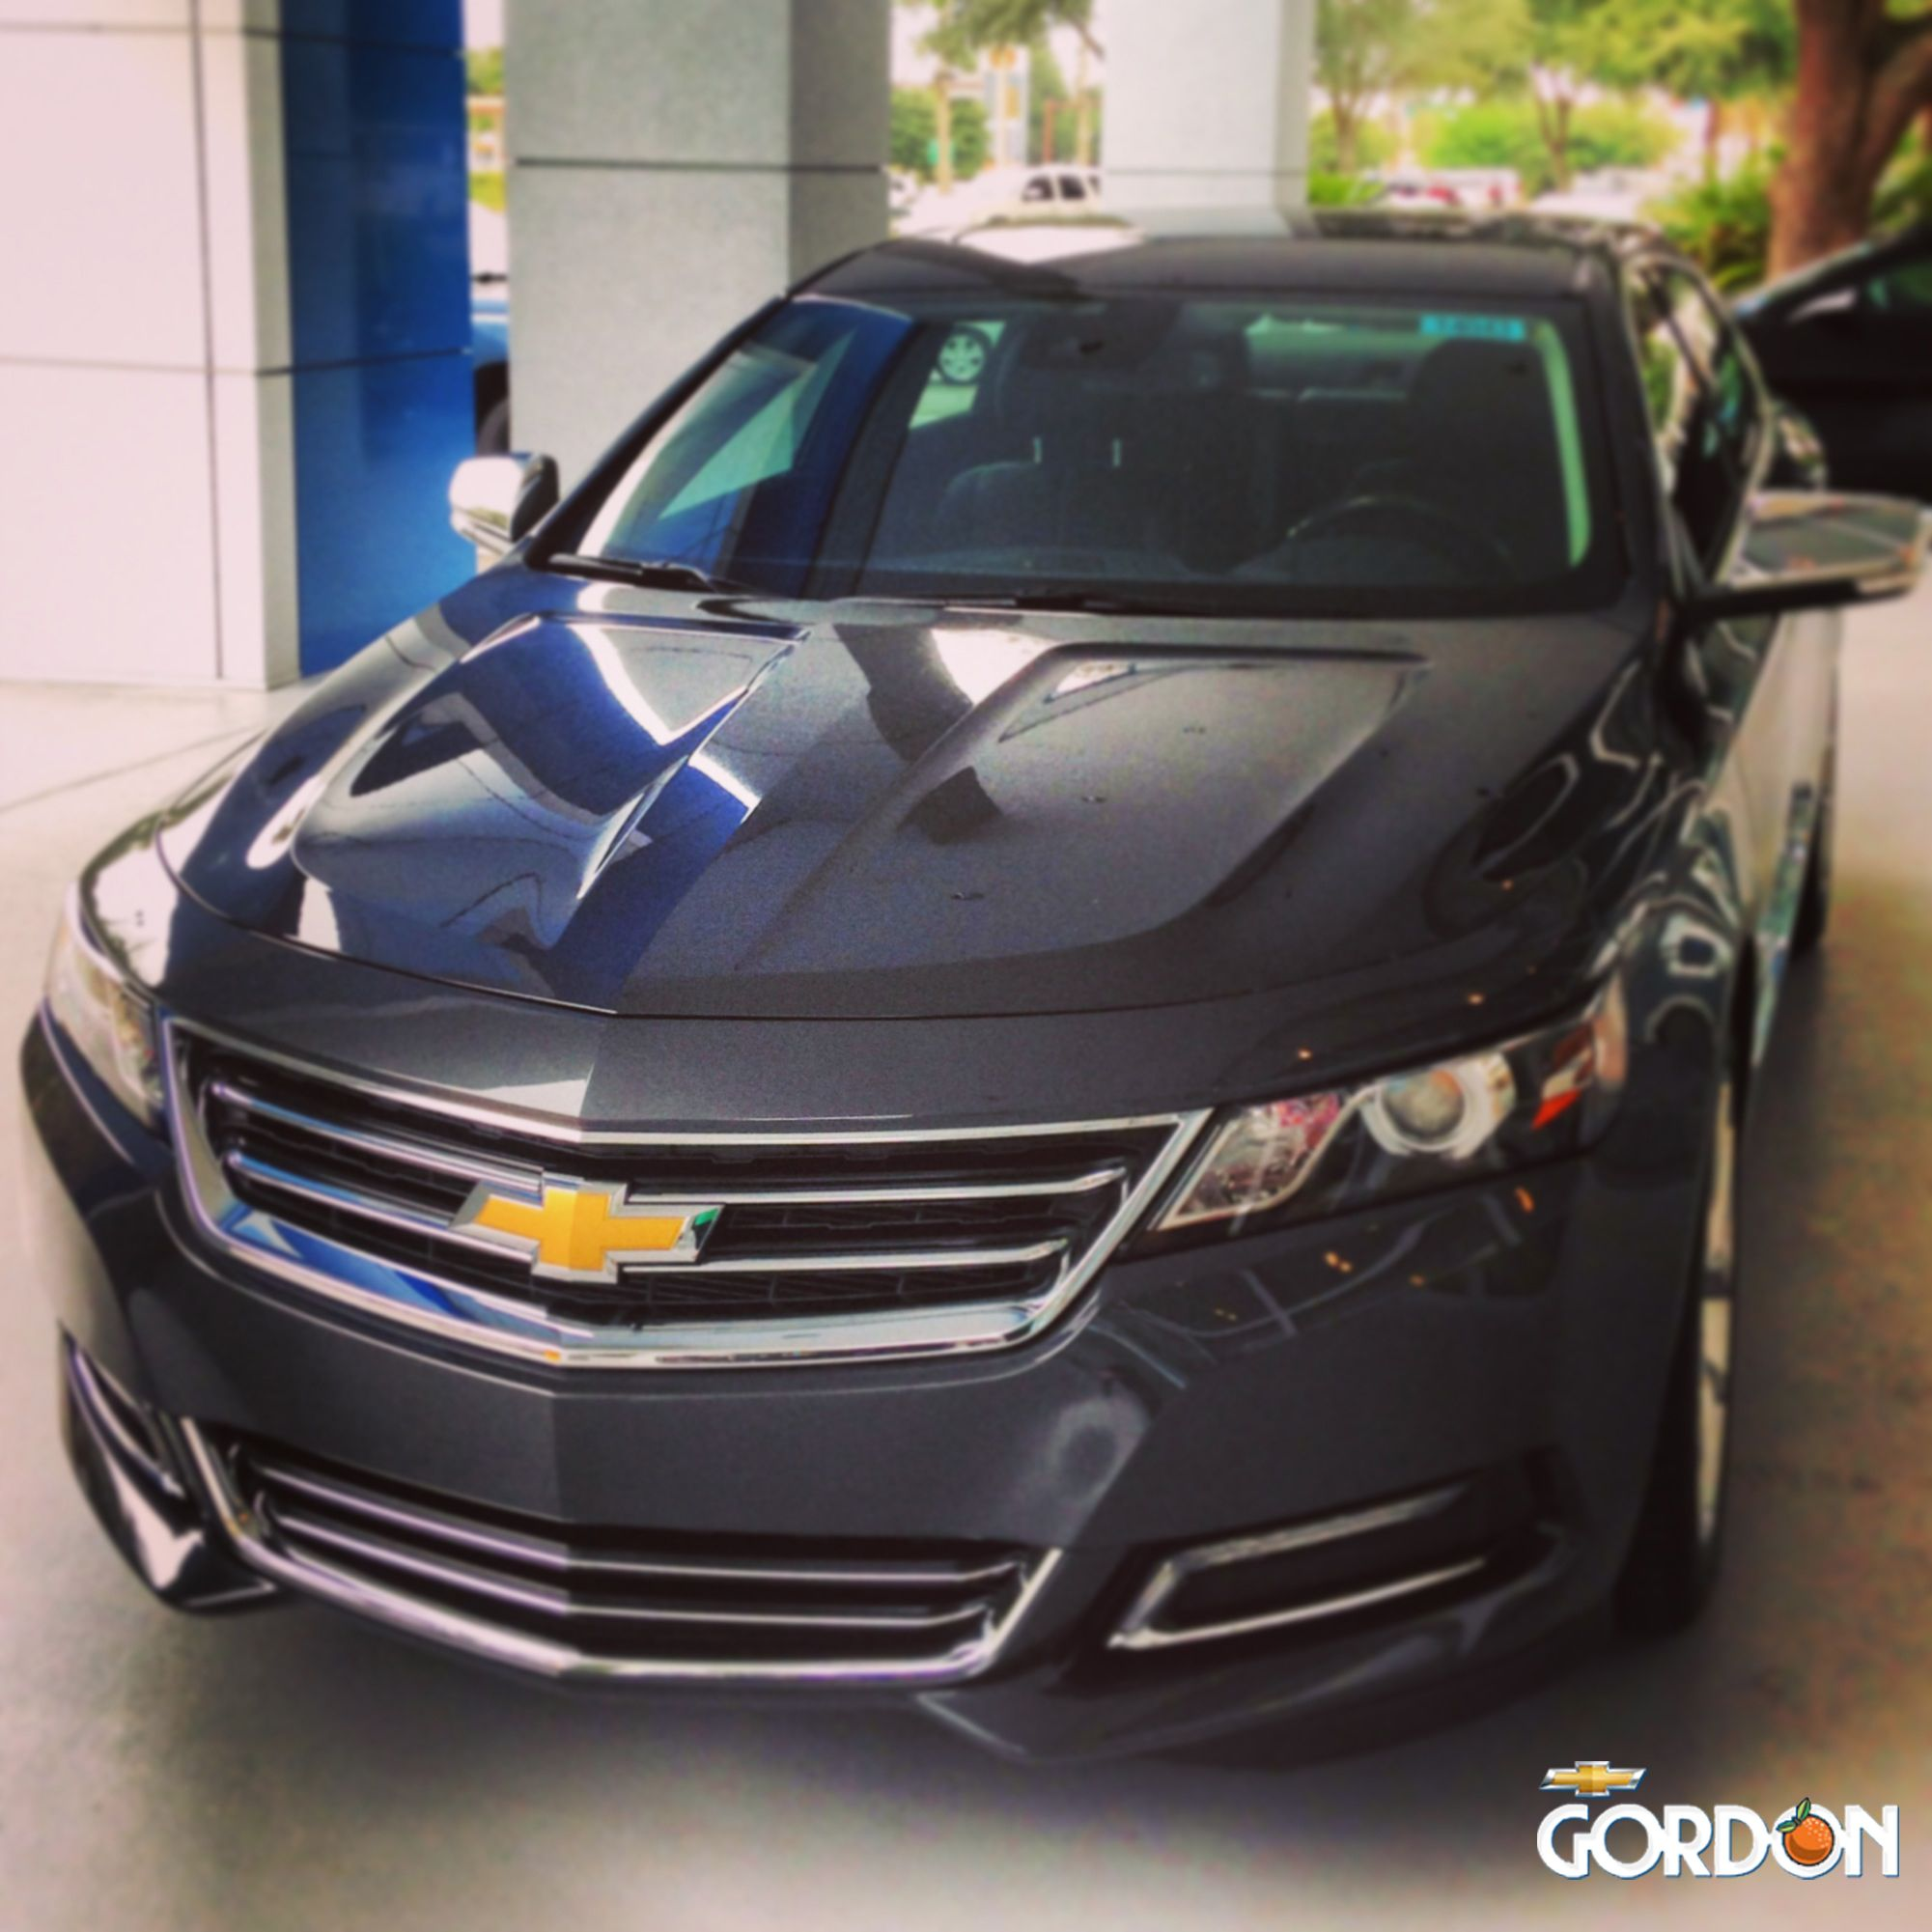 The 2014 Chevy Impala! This is at the top of my